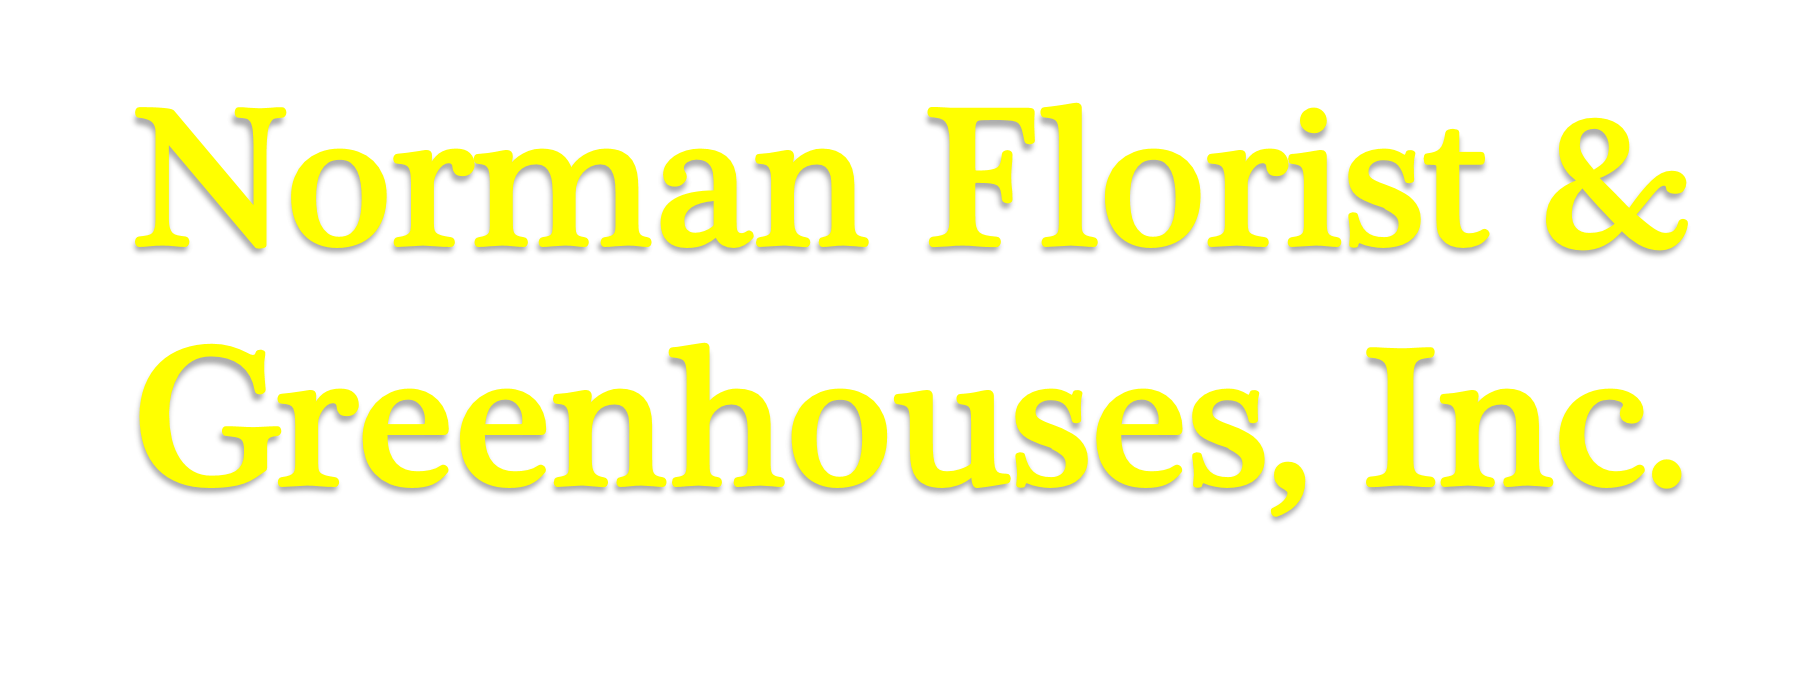 Hot springs florist flower delivery by norman florist norman florist greenhouses inc mightylinksfo